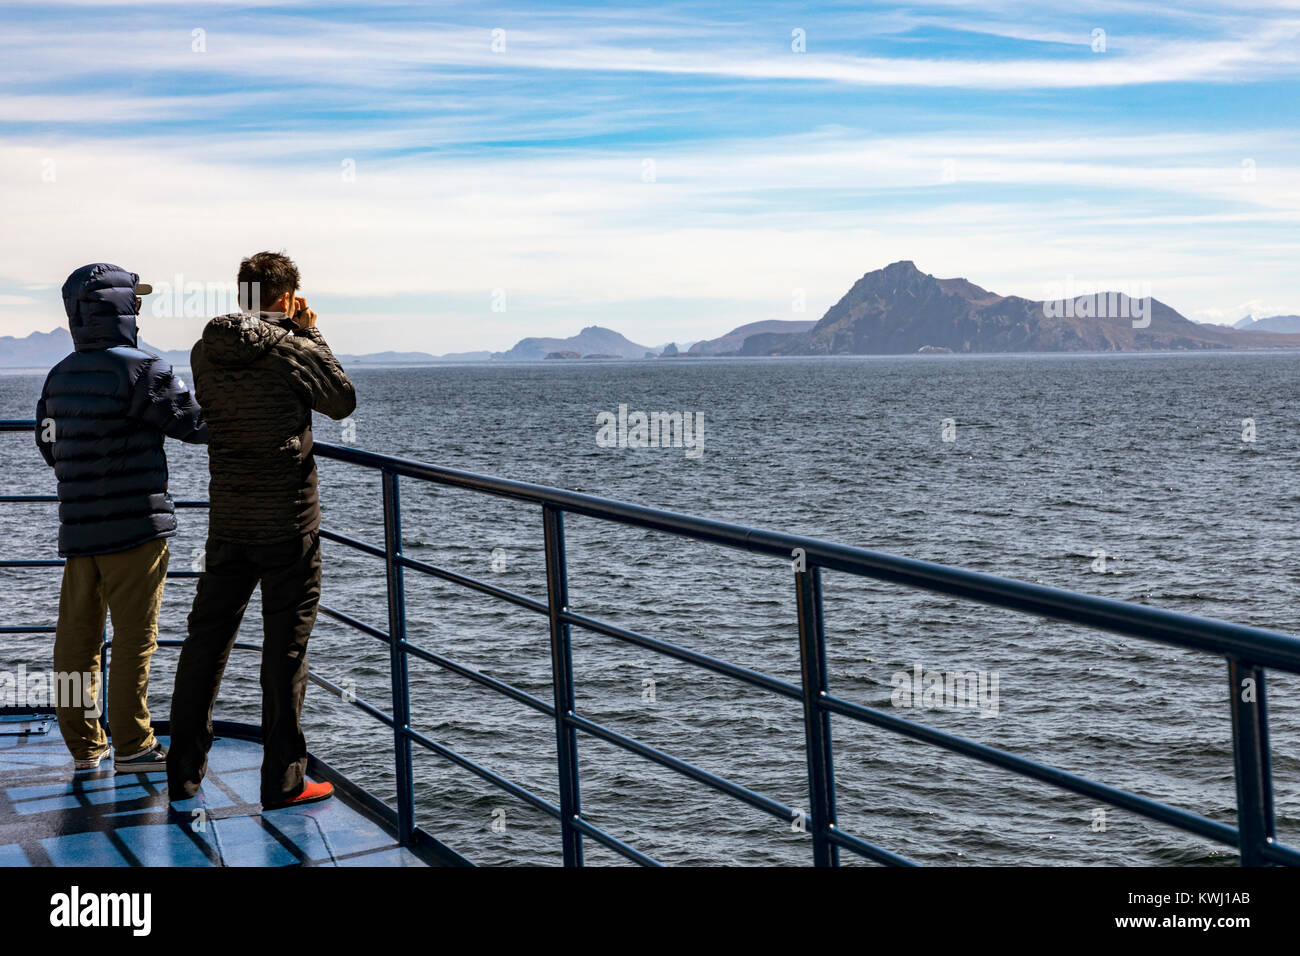 Travelers view Cape Horn; Cabo de Hornos; southernmost headland of Tierra del Fuego archipelago of southern Chile; - Stock Image